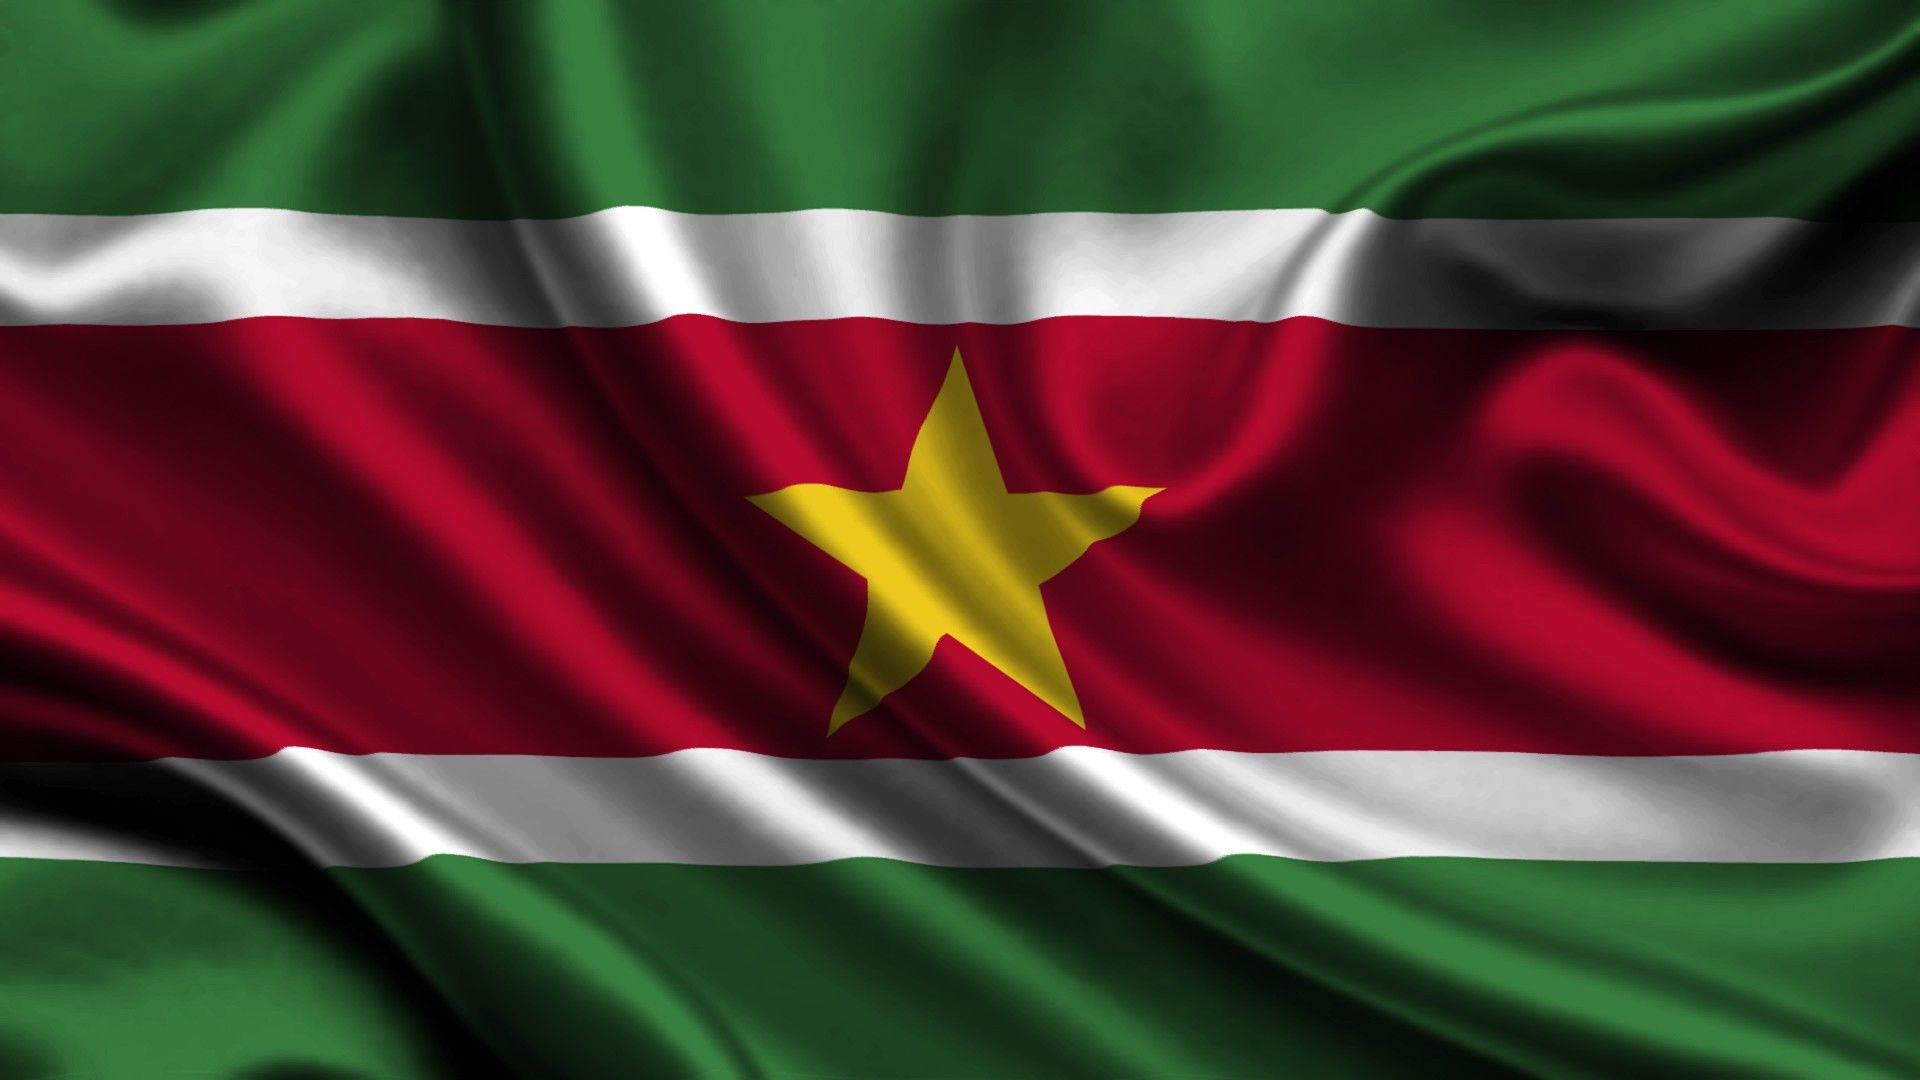 Flag of Suriname wallpaper  Flags wallpaper  Pinterest  Flags